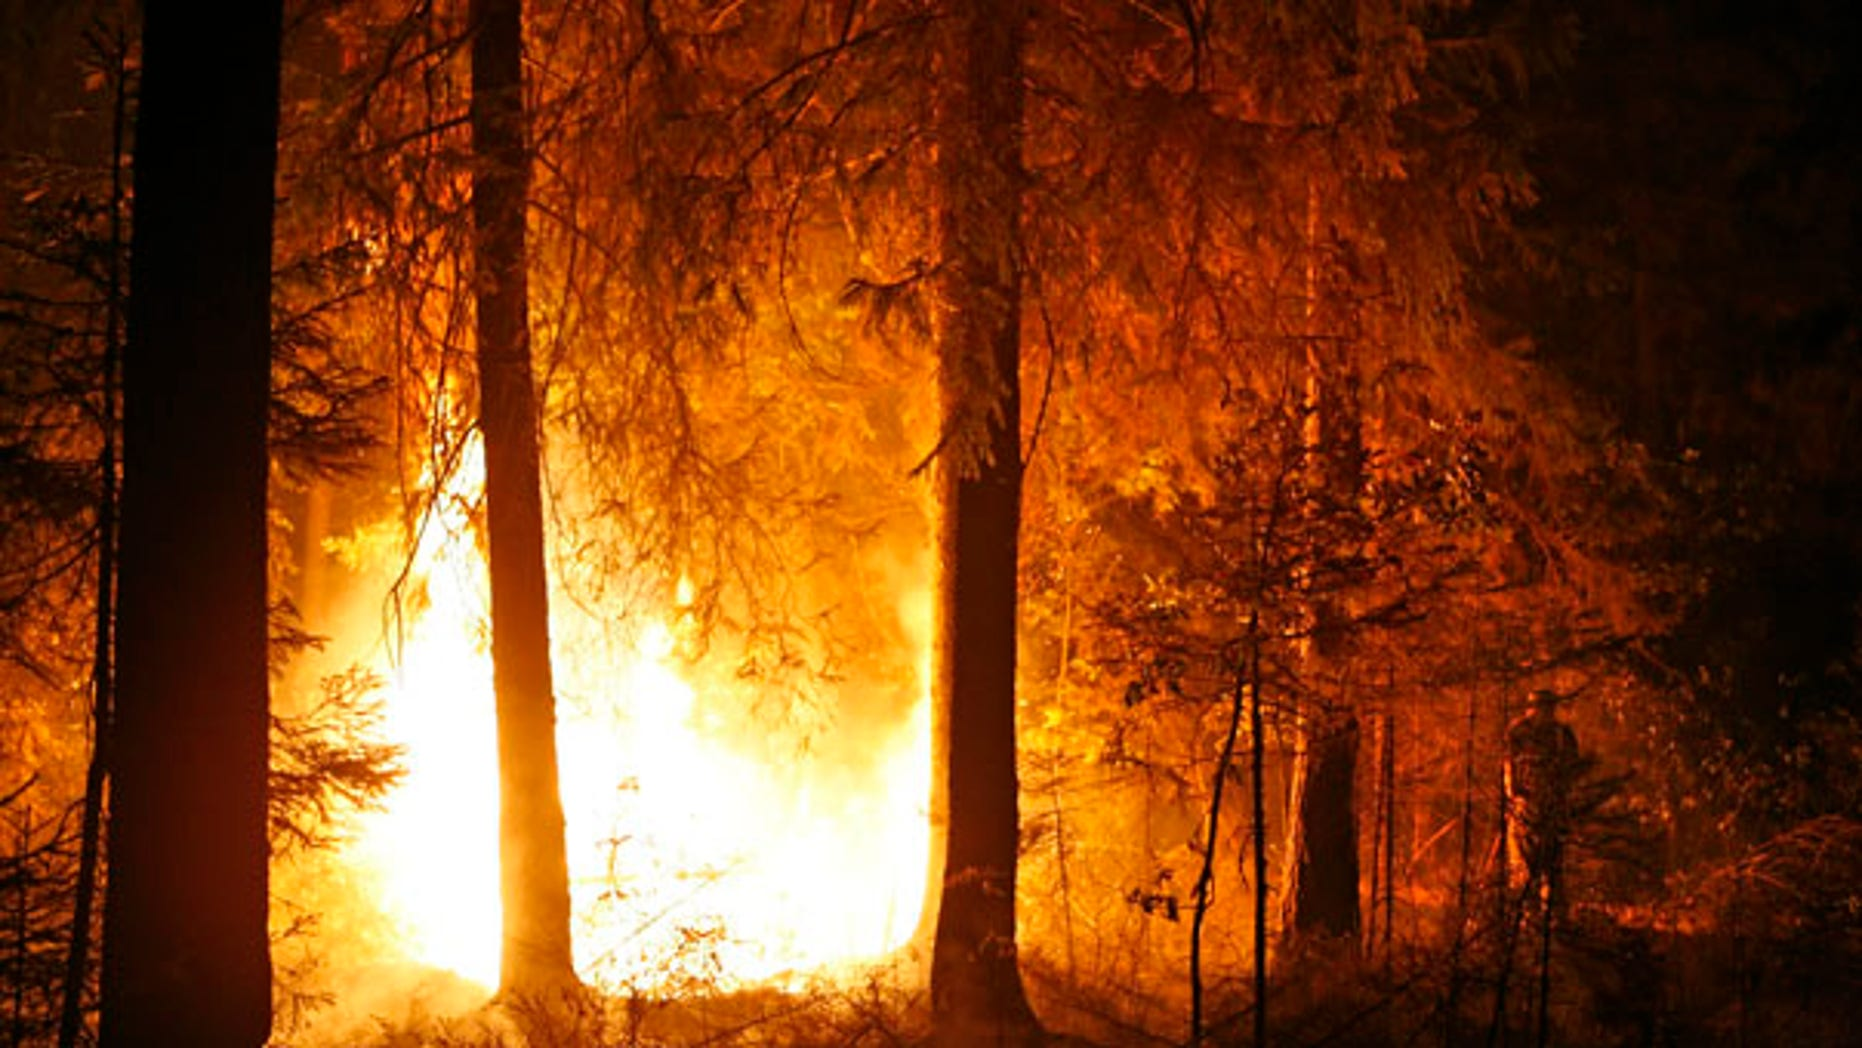 Aug. 13: A volunteer tries to extinguish a forest fire near the village of Kovrigino, about 45 miles east of Moscow.